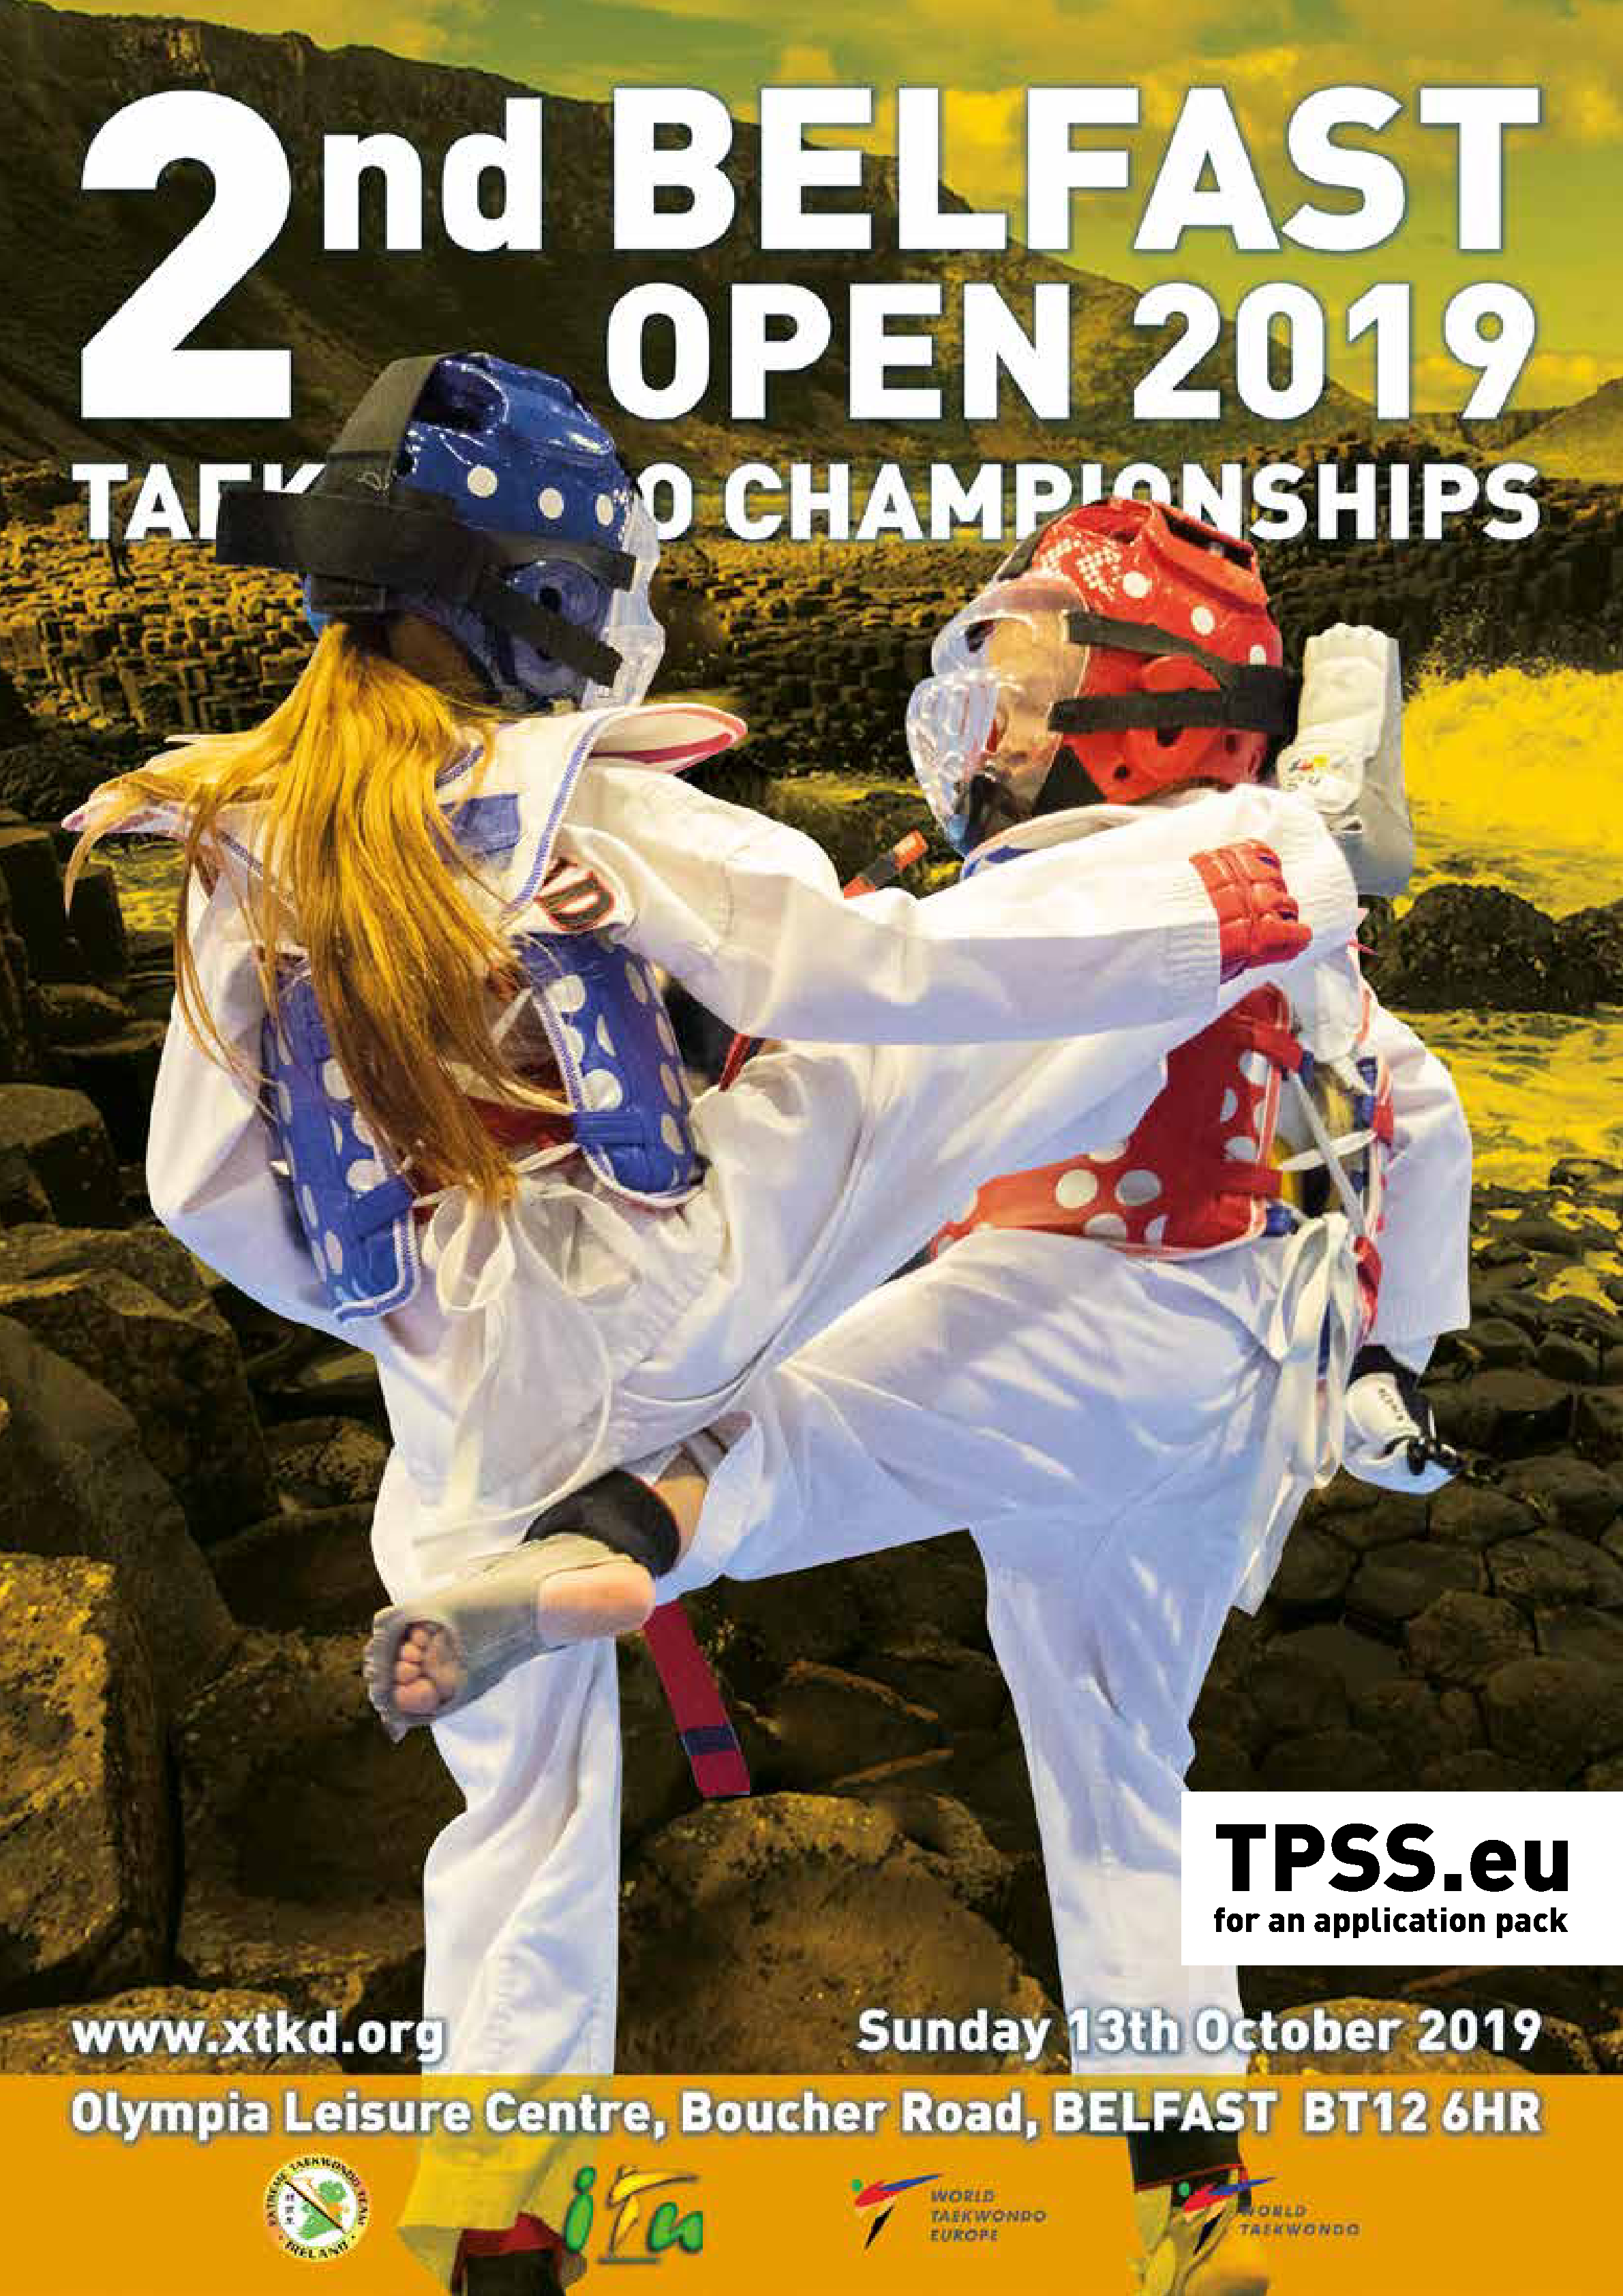 TPSS 2018 - TaekoPlan Tournament Subscription Site - Now supporting